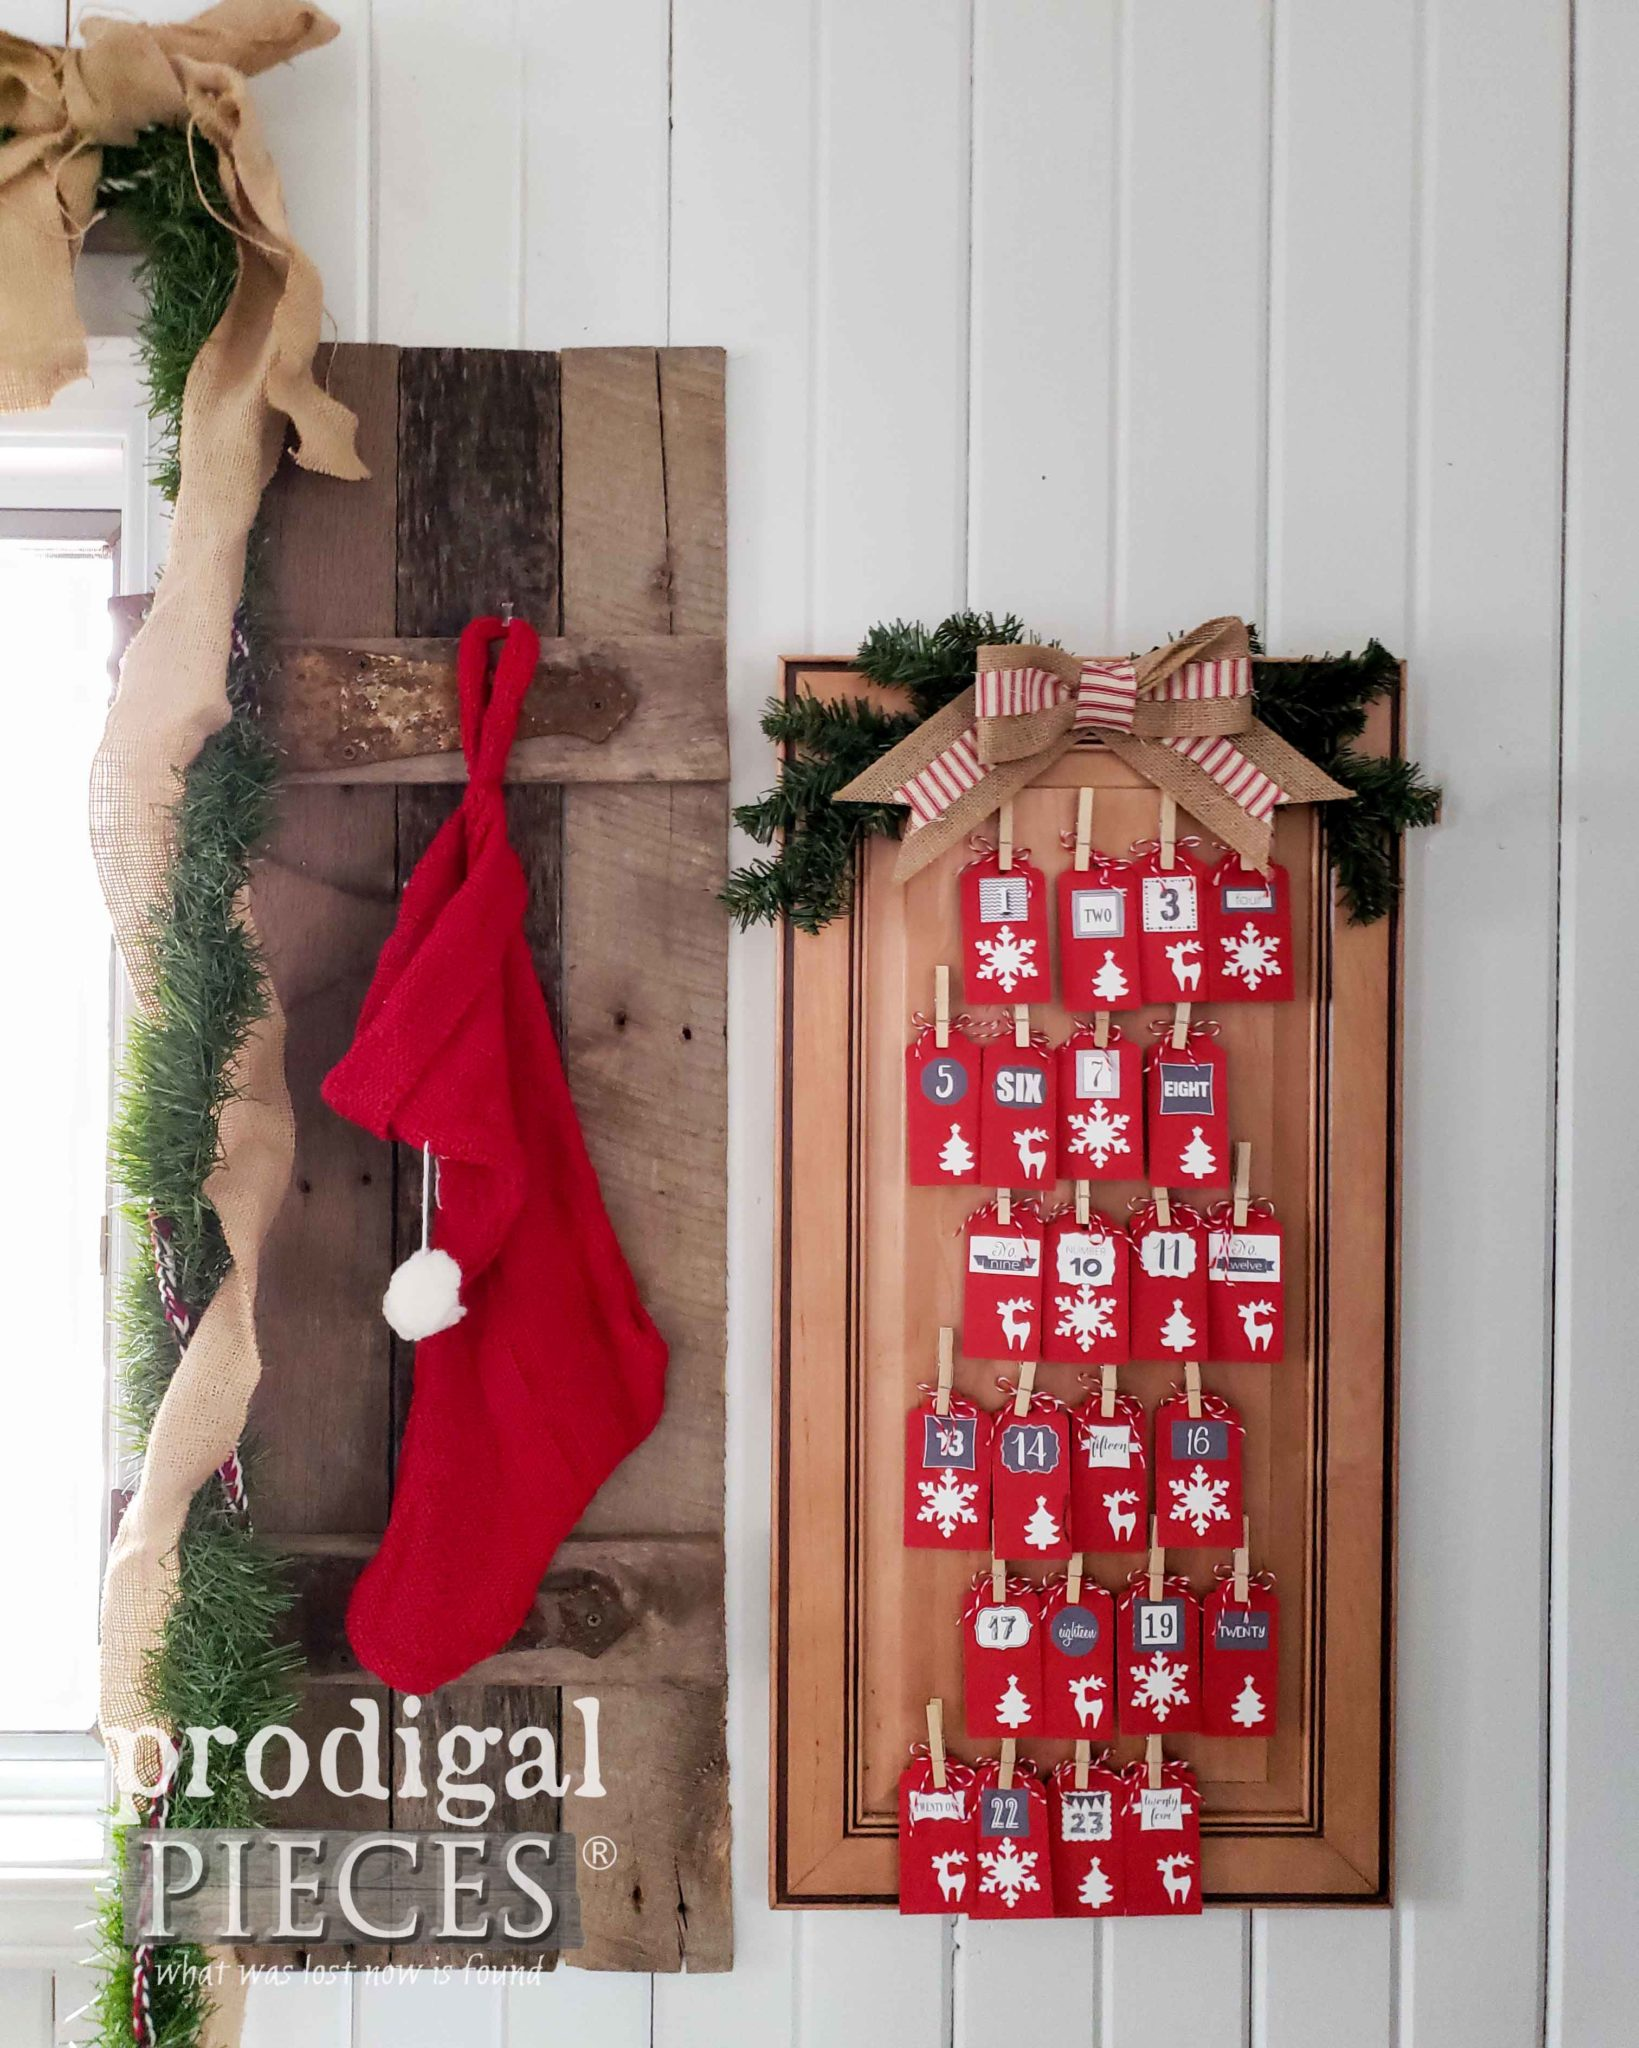 Farmhouse Style DIY Advent Calendar from Upcycled Cupboard Door by Prodigal Pieces Kids Create | prodigalpieces.com